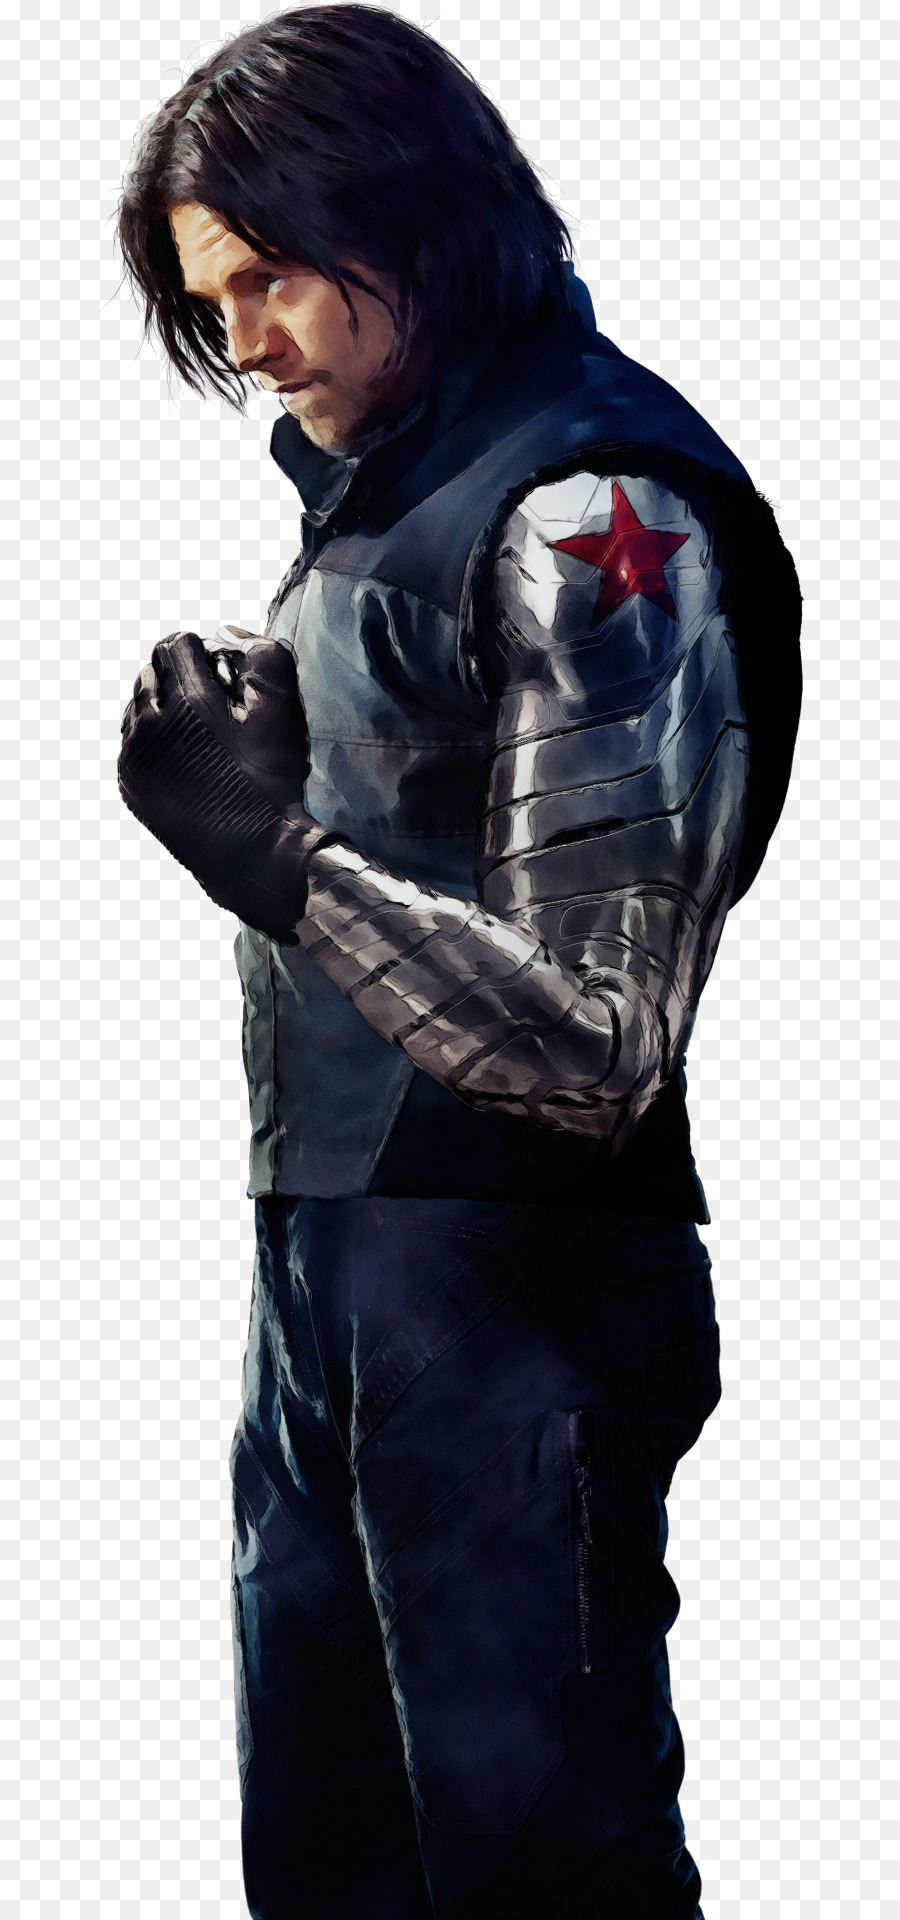 Bucky Barnes Captain America: The Winter Soldier Sebastian Stan.